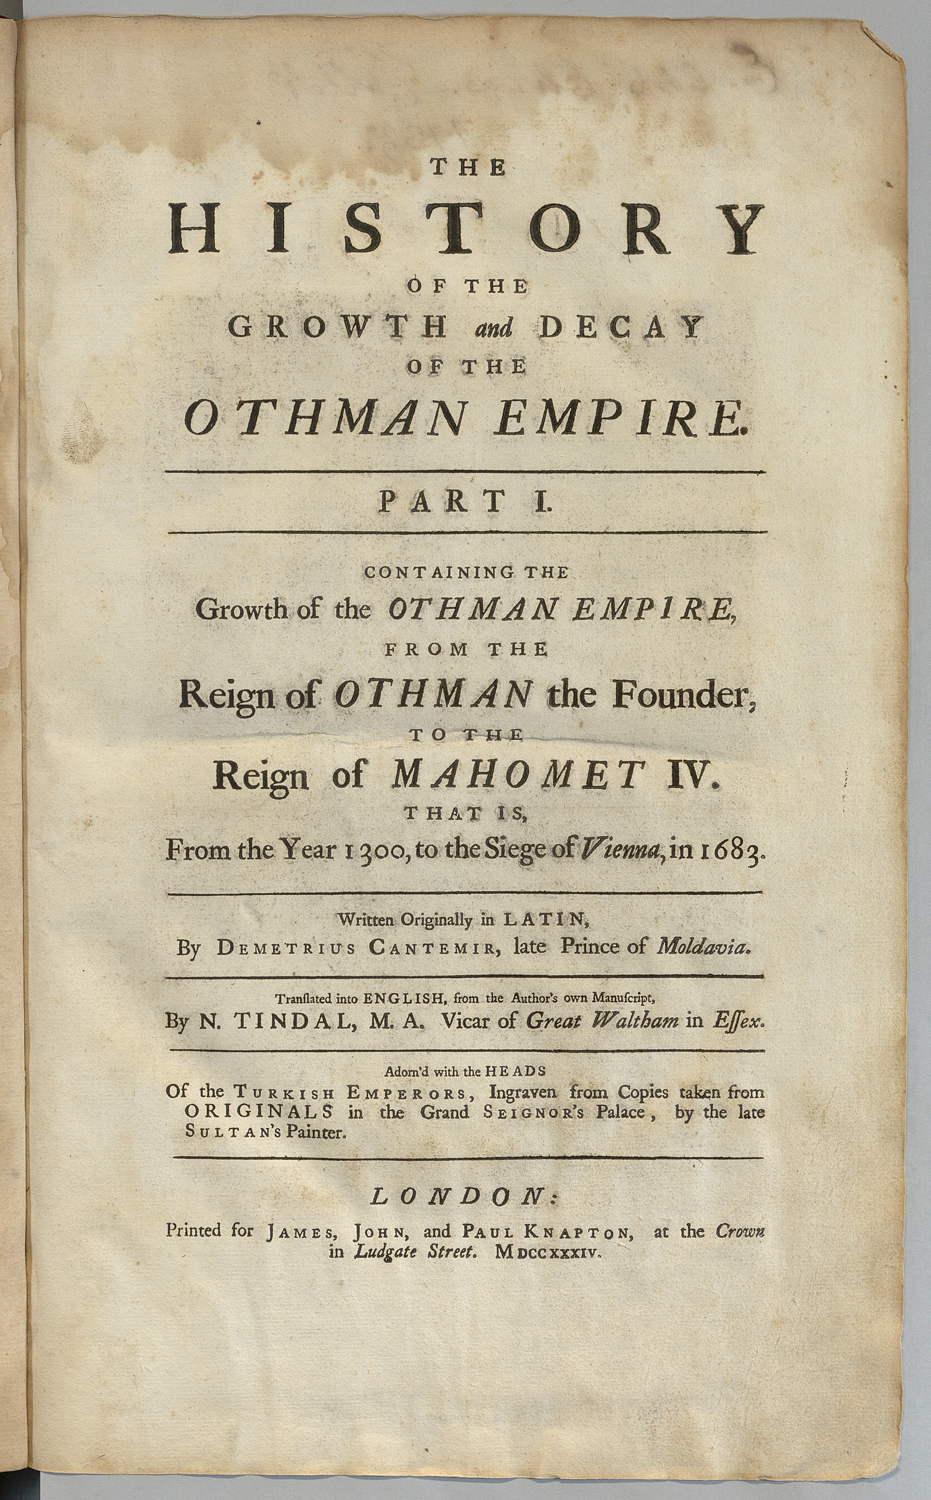 The History of Growth and Decay of the Othman Empire